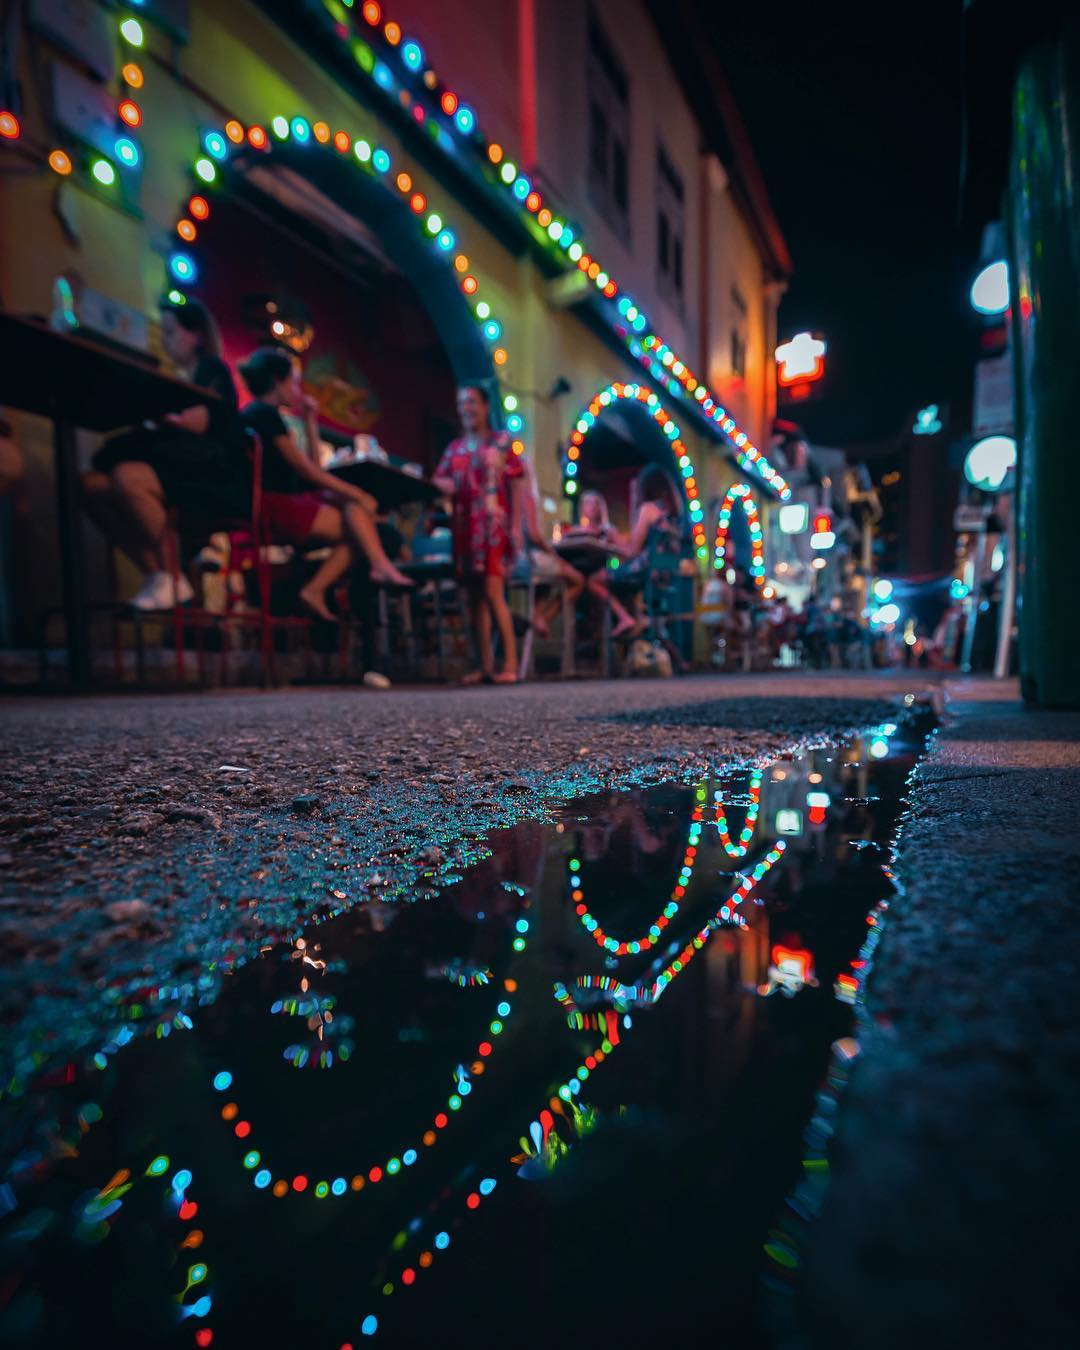 Street Photography From A New Perspective: Jimmy Chan